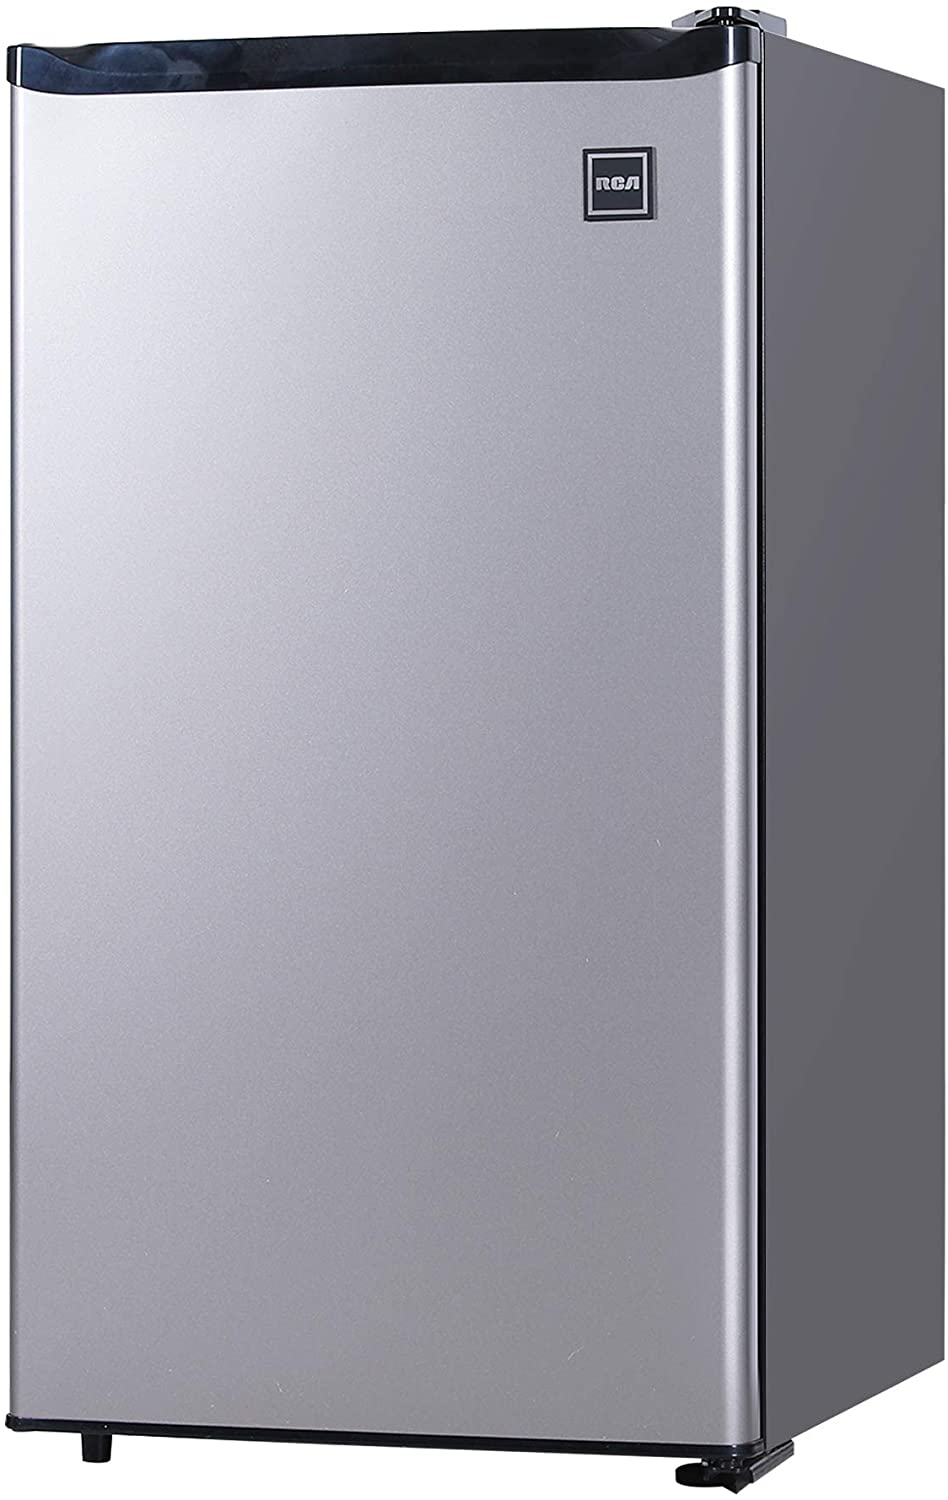 RCA RFR322-B Single Door Mini Fridge